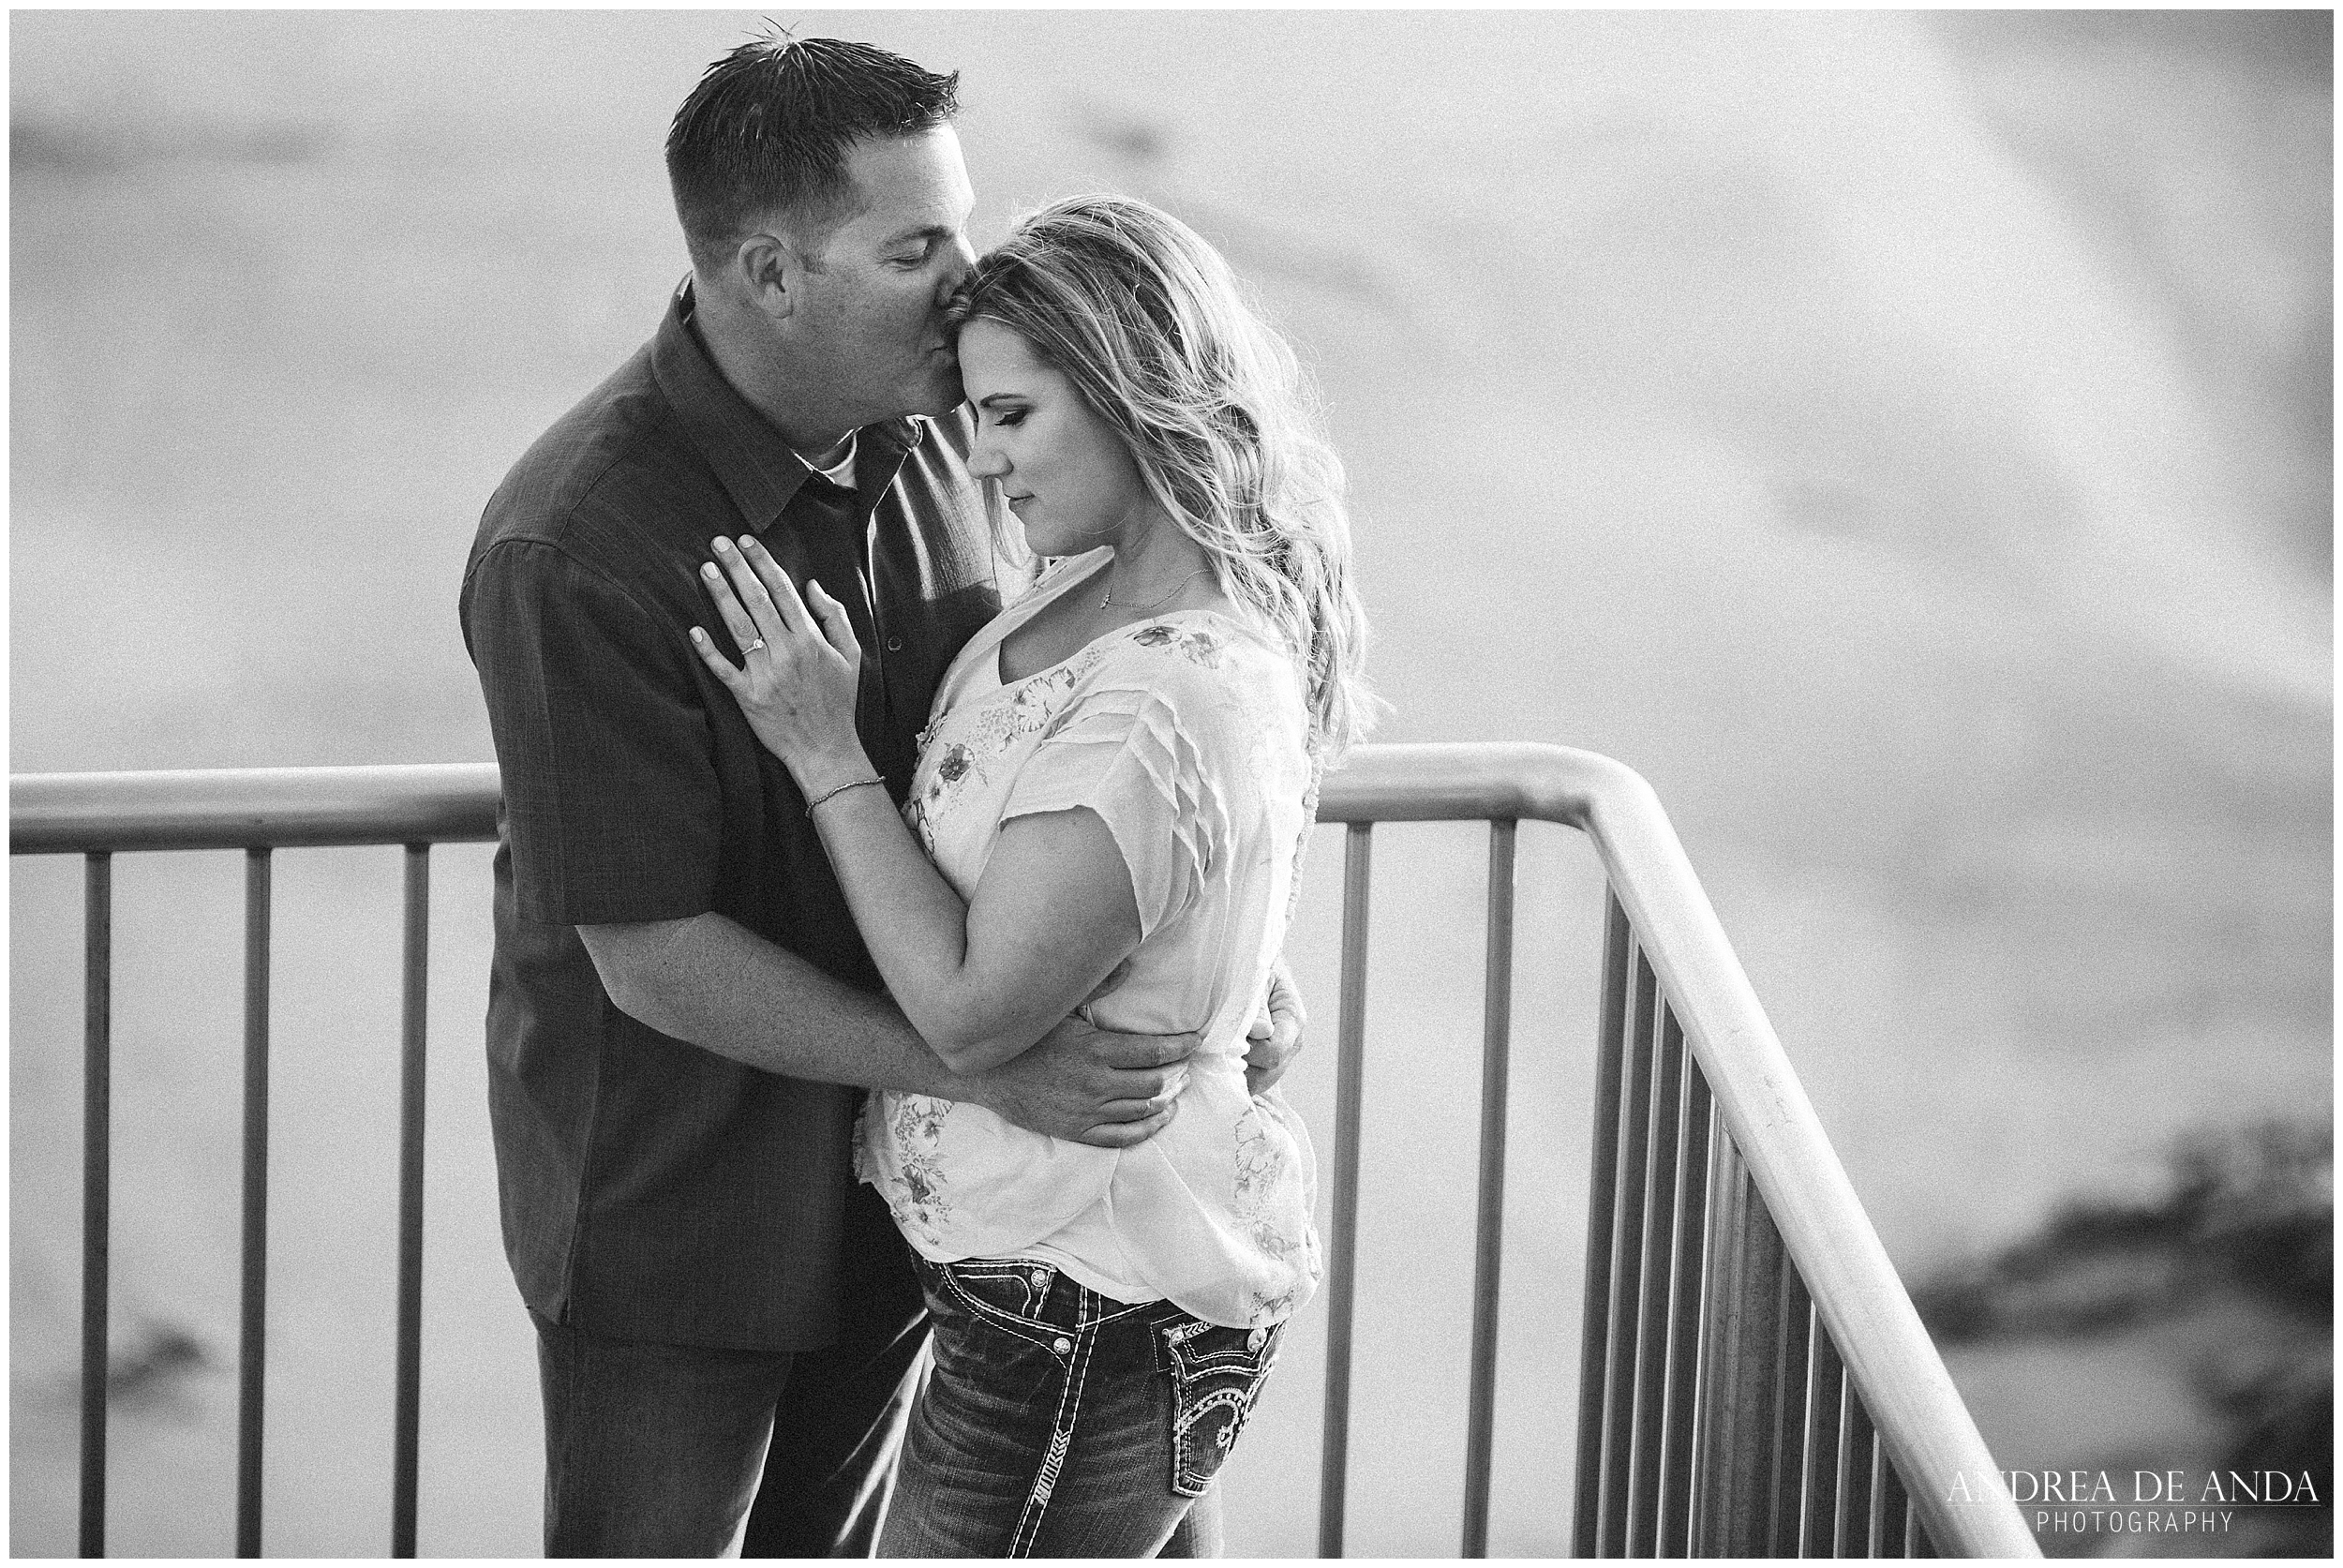 Bay area beach engagement session by Andrea de Anda Photography__0001.jpg